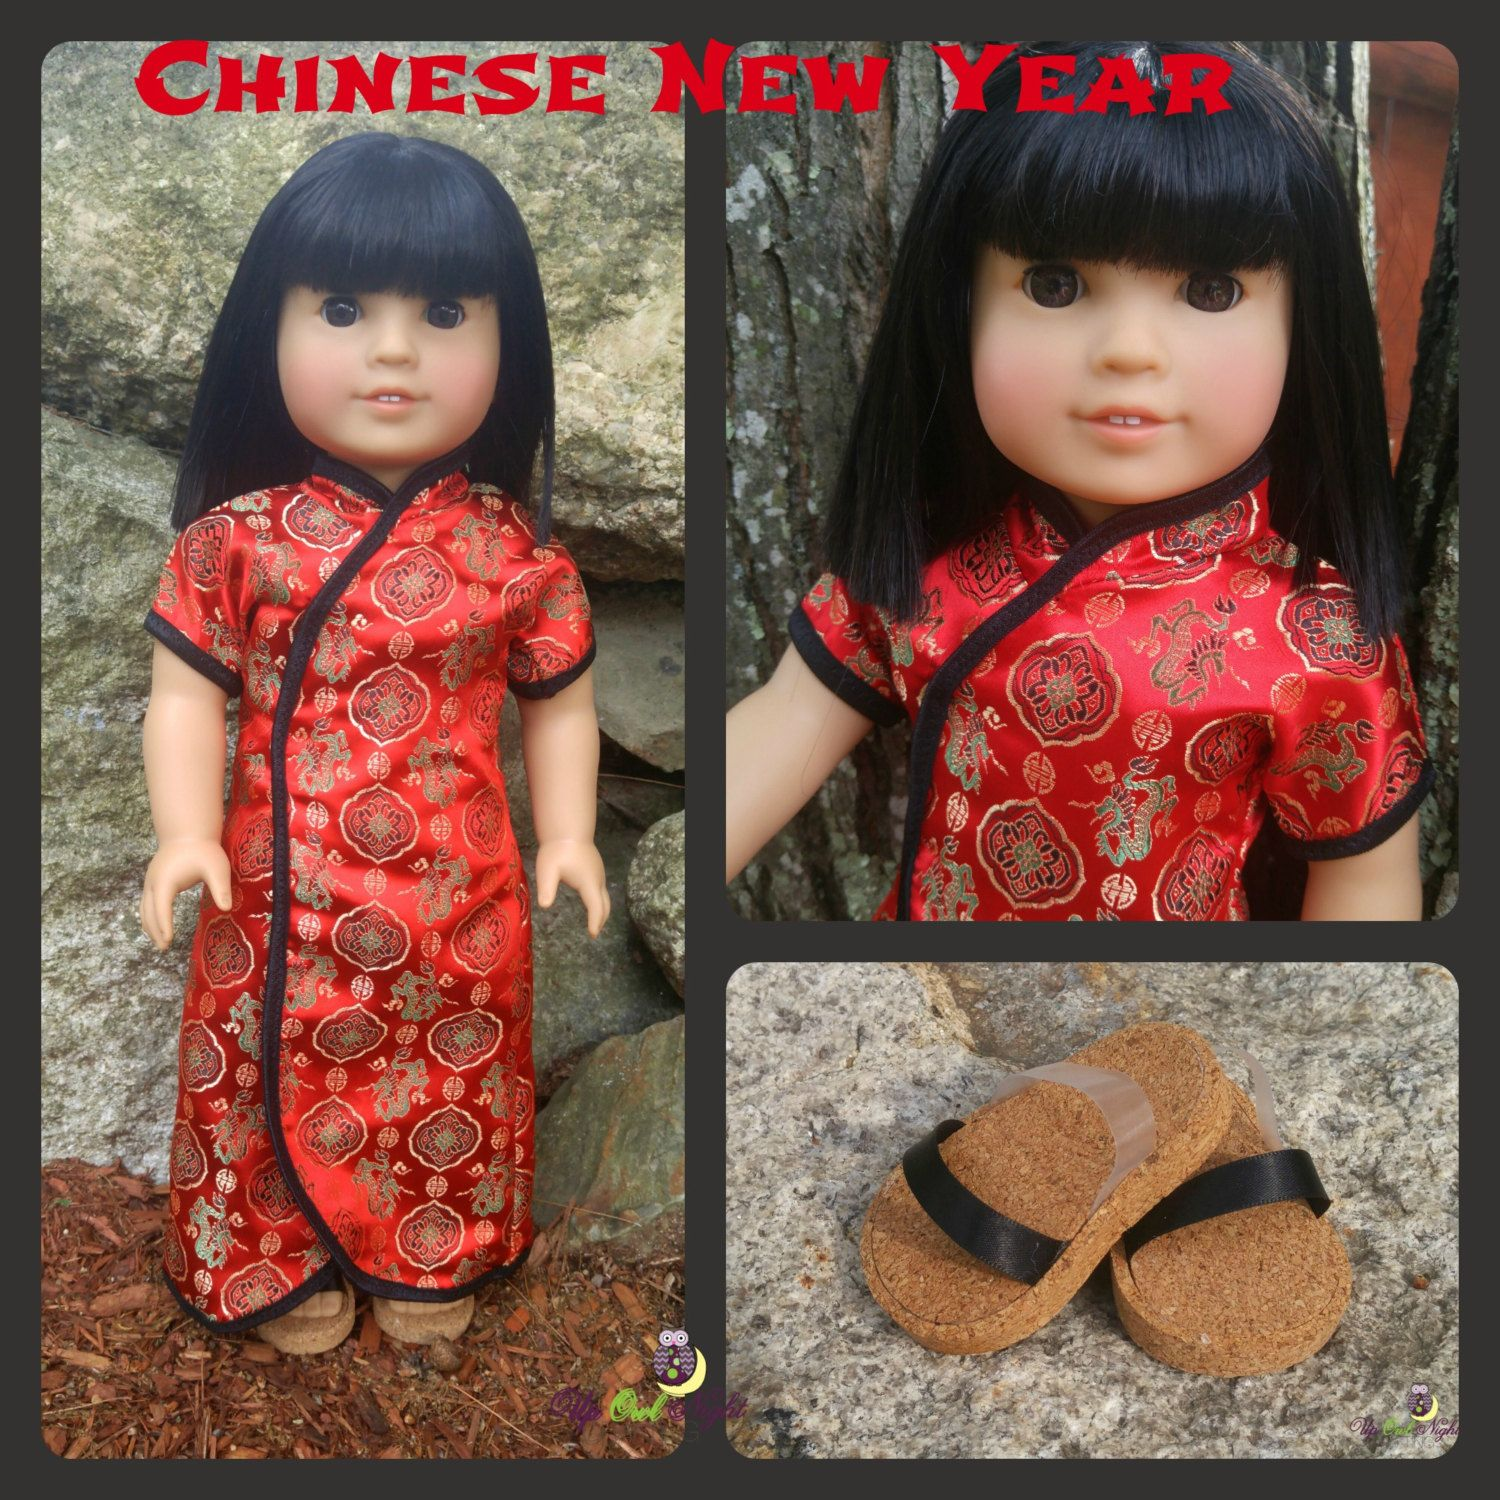 american made chinese new year outfit fits 18 girl dolls pinned by pin4etsy - Chinese New Year Outfit